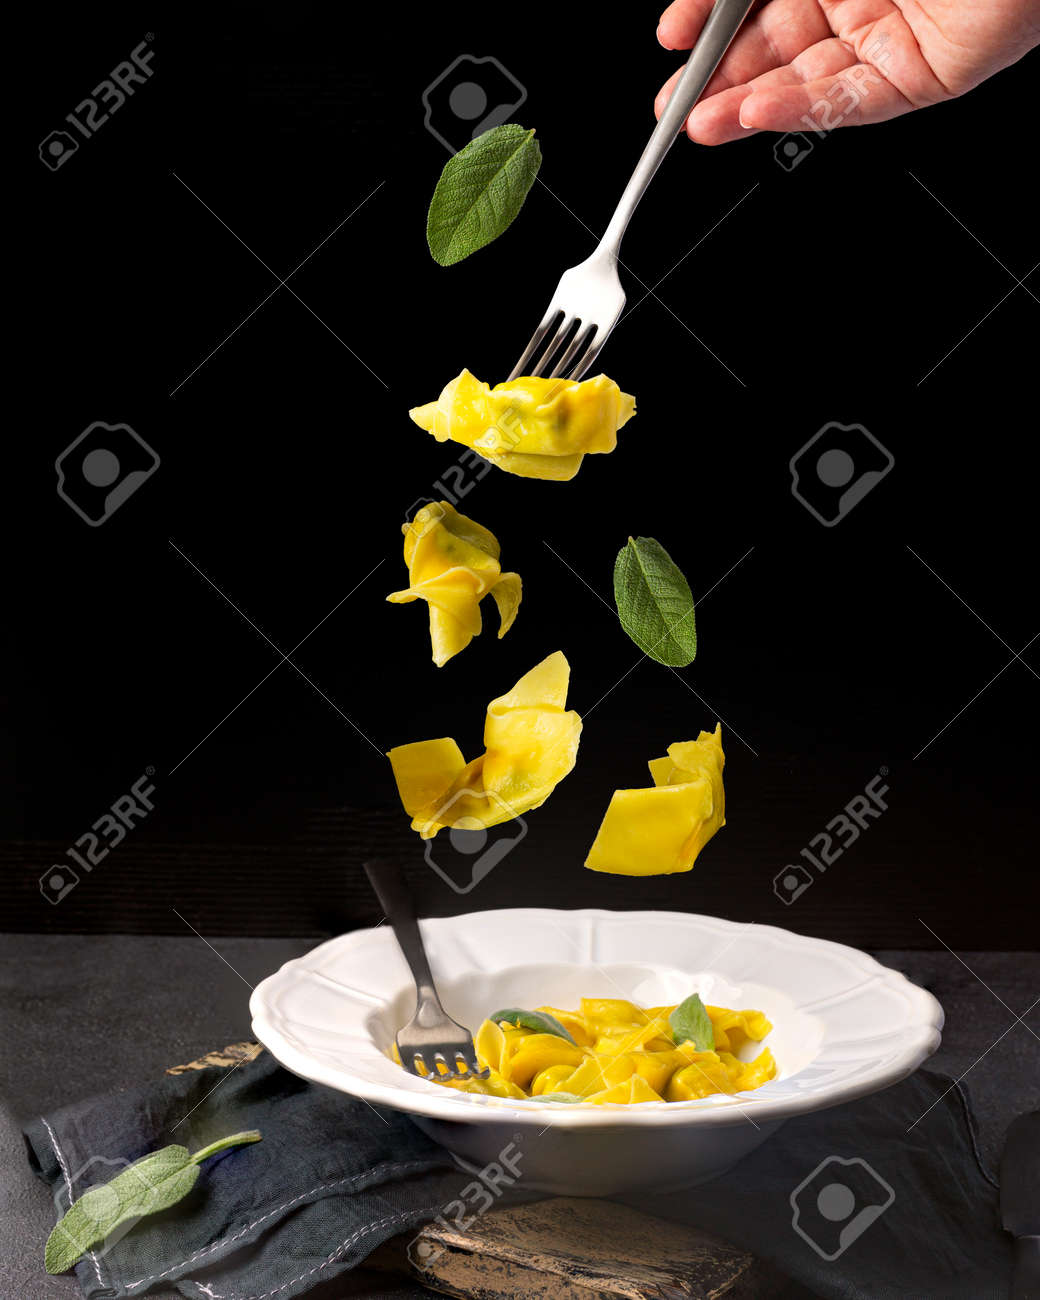 Creative concept with falling food on black backdrop - 173342461